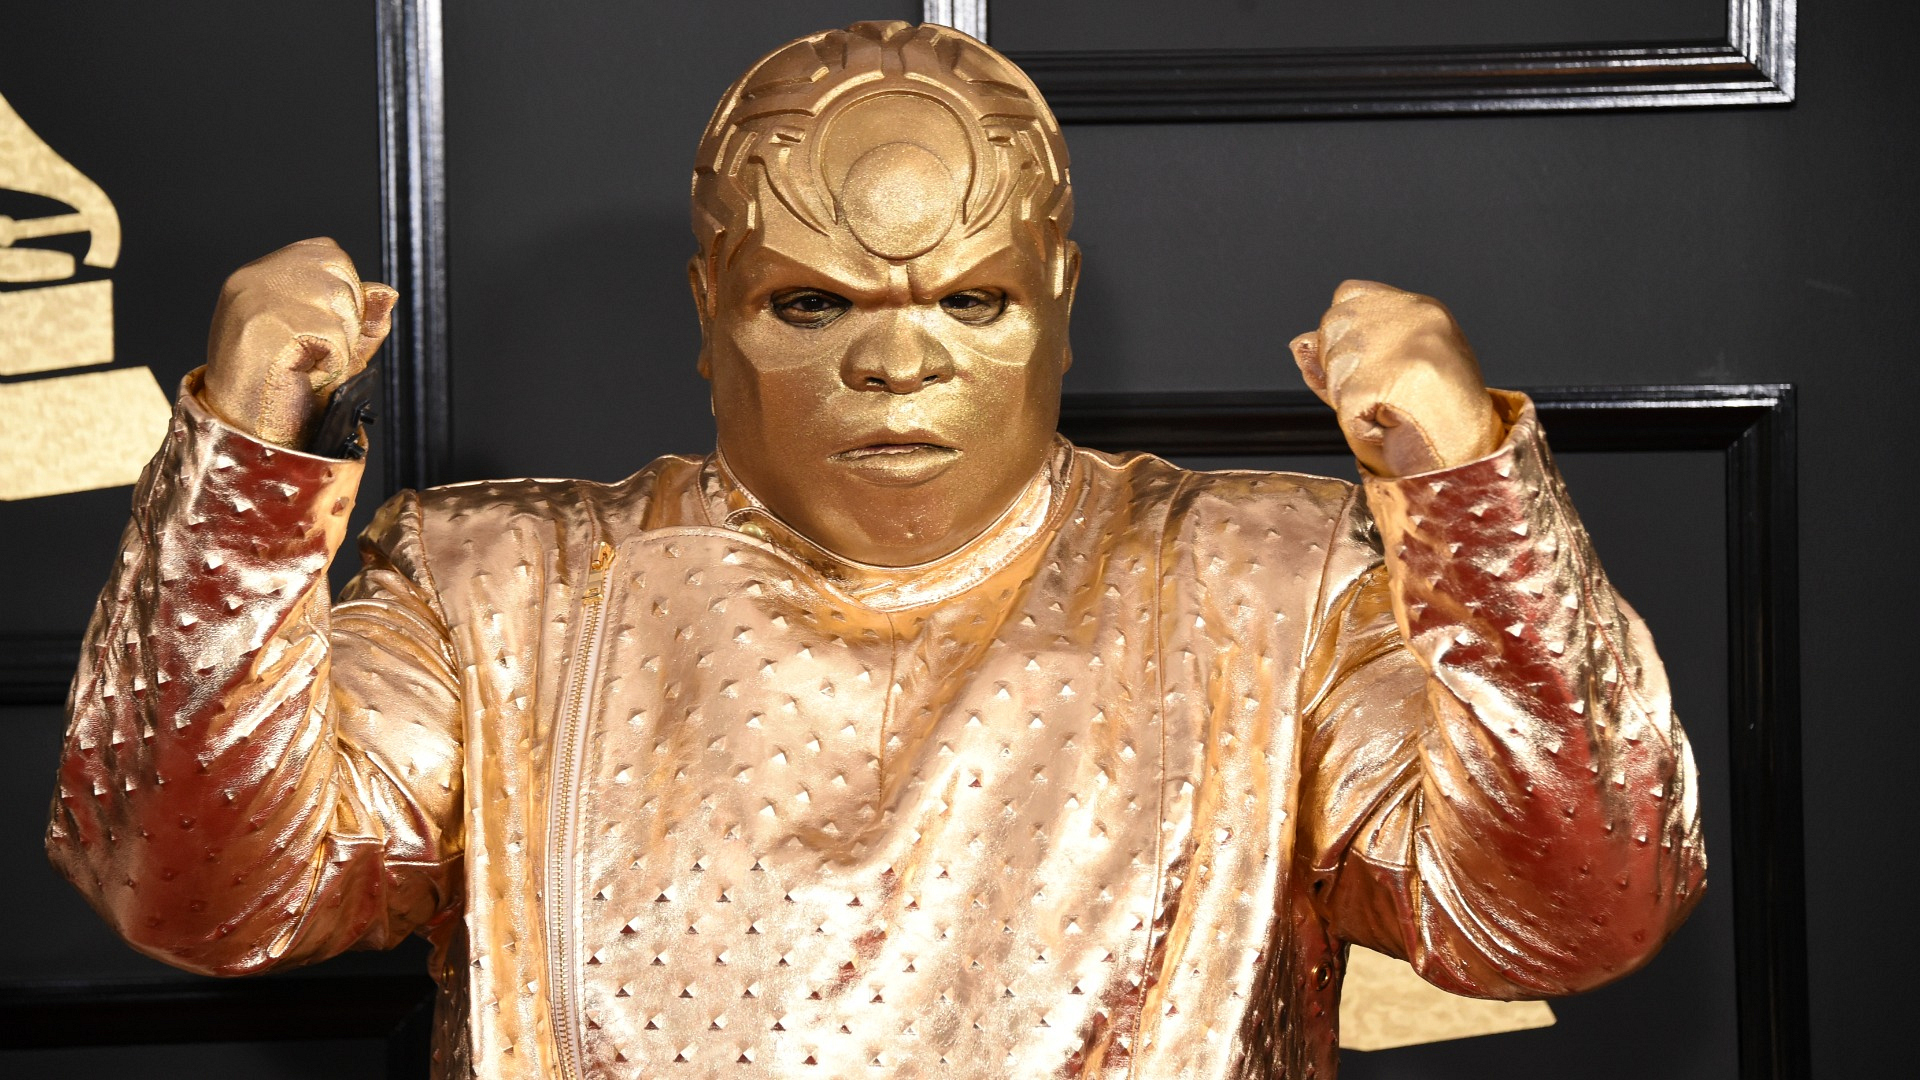 Talk about 24k magic! CeeLo Gold—er, Green—came in like a metallic wrecking ball.